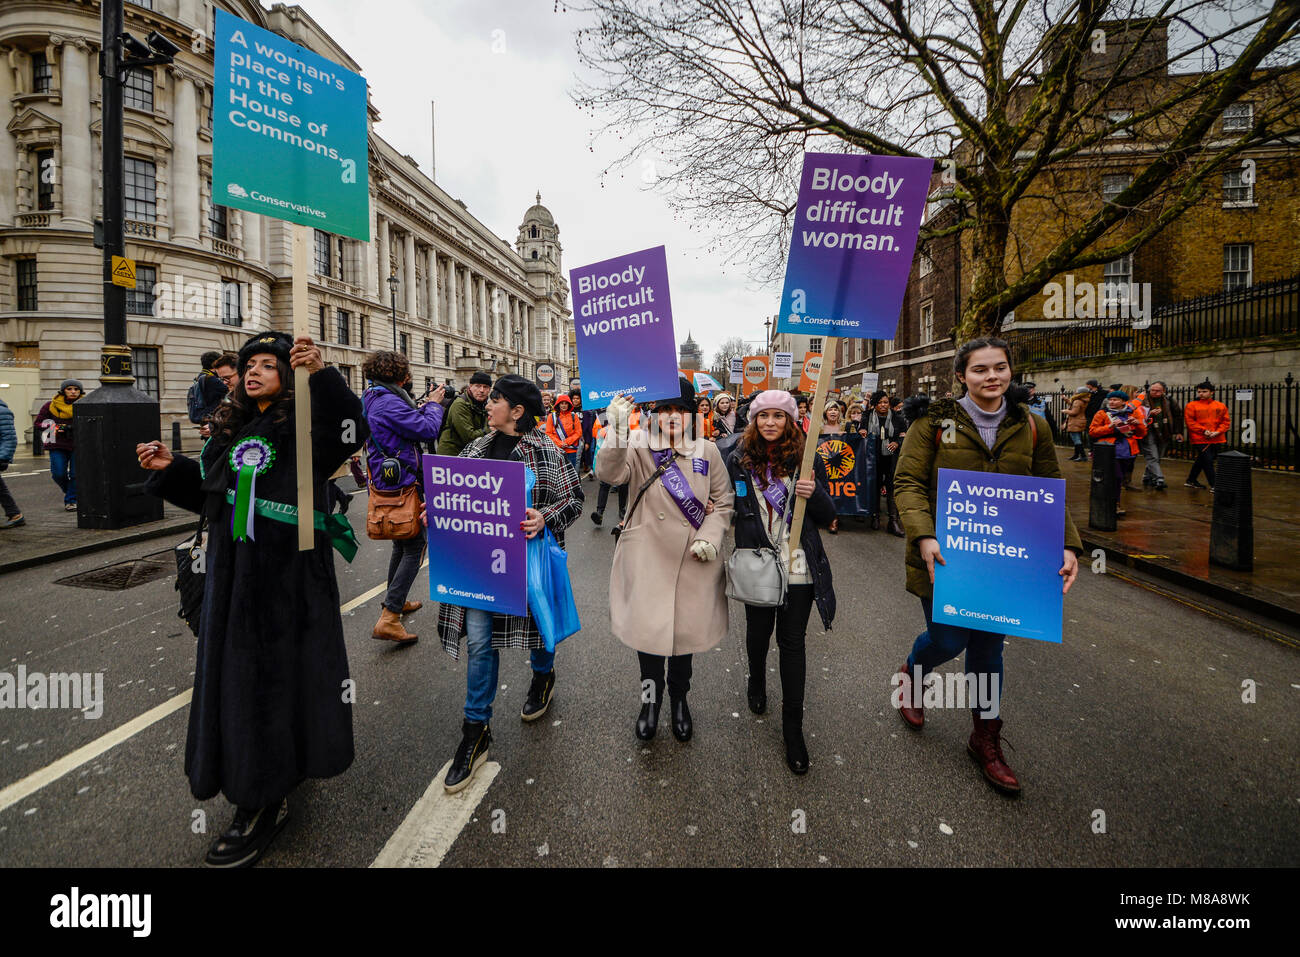 Protesters marching with Conservative placards in Whitehall at the March 4 Women women's equality protest organised - Stock Image